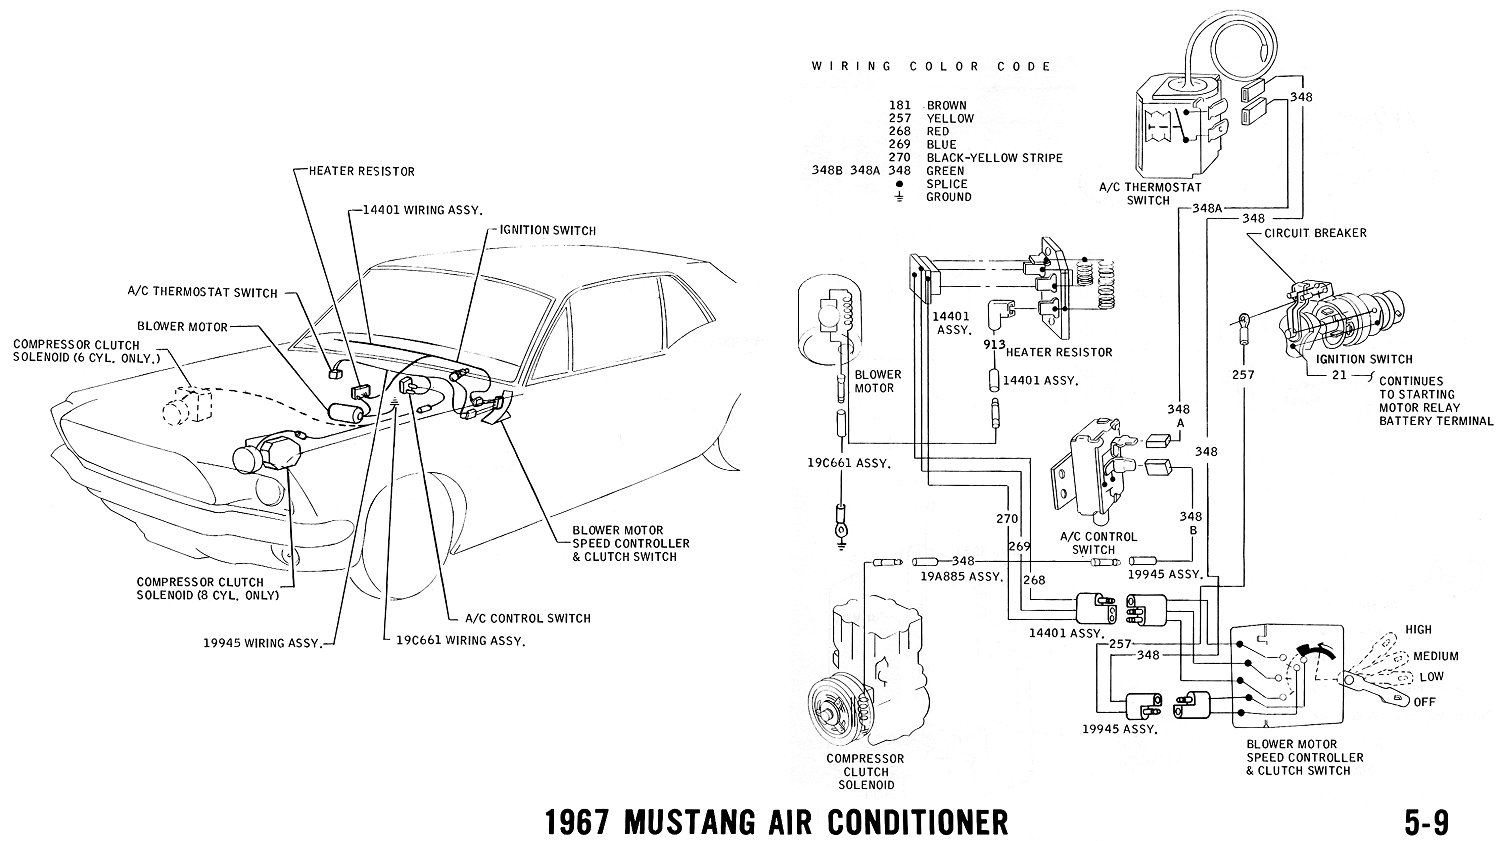 1967 mustang neutral safety switch wiring diagram